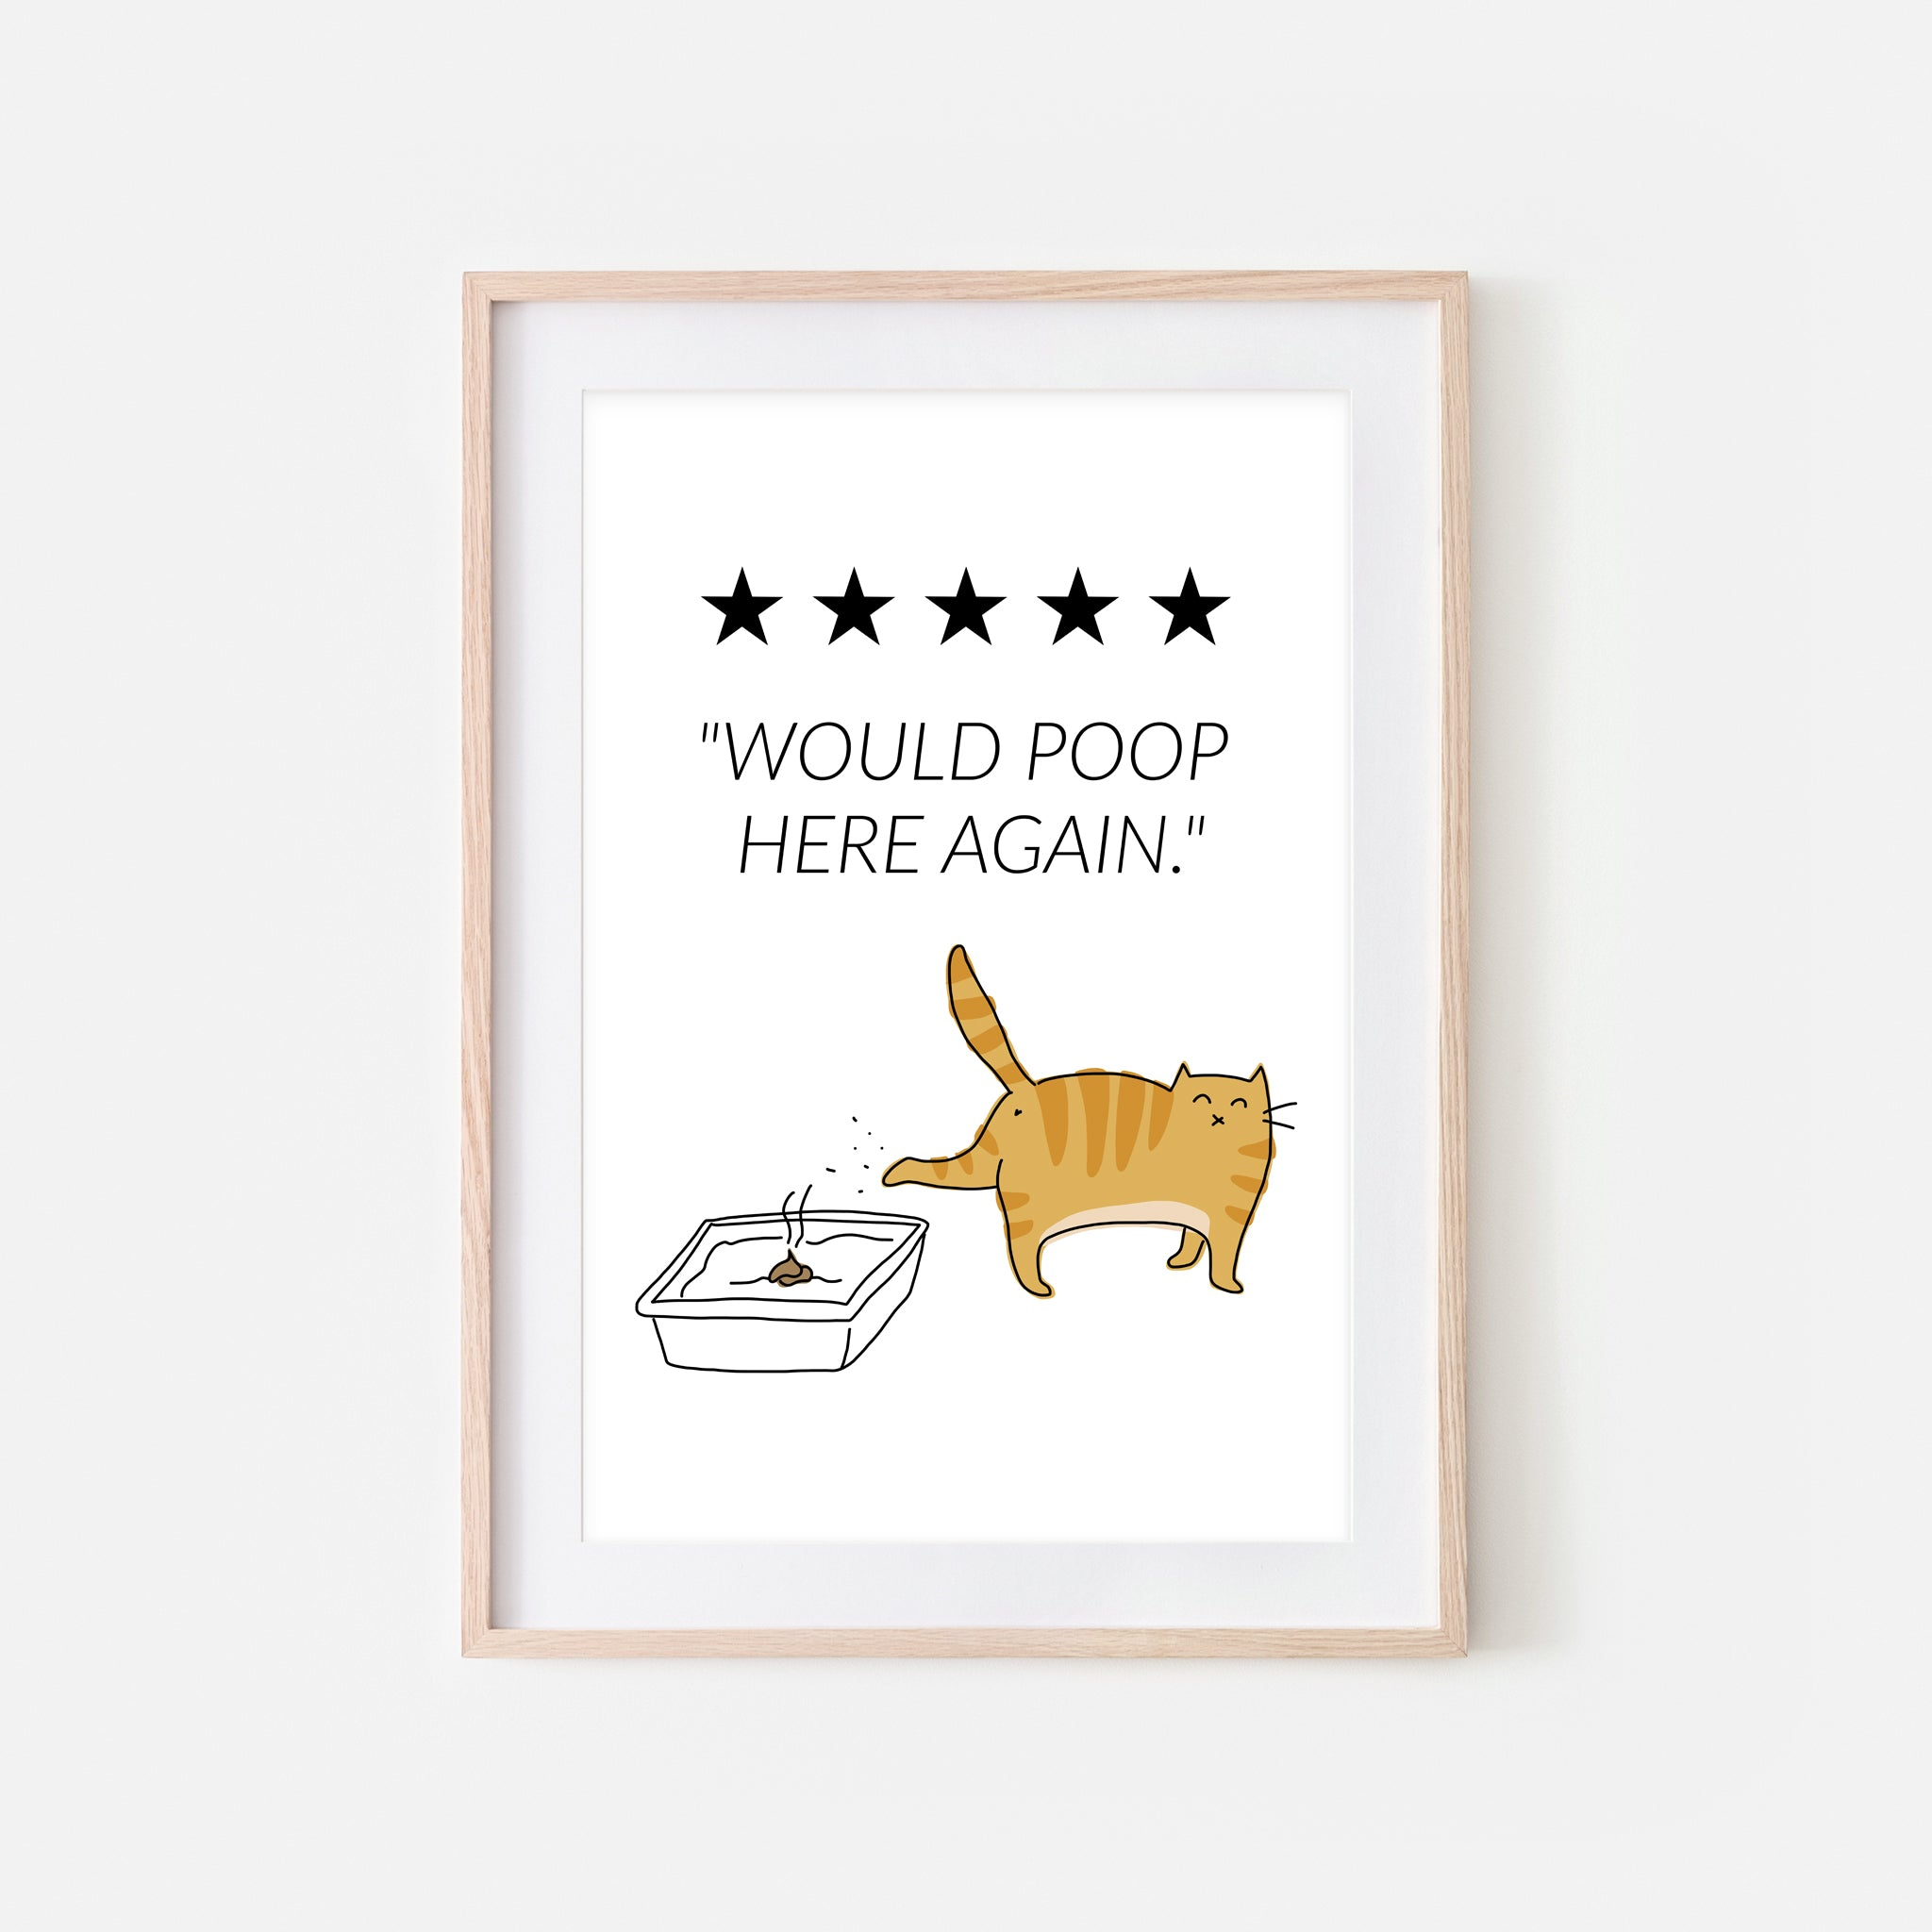 Would Poop Here Again Sign - Orange Tabby Cat Wall Art - Funny Bathroom Restroom Decor - Printable Downloadable Print